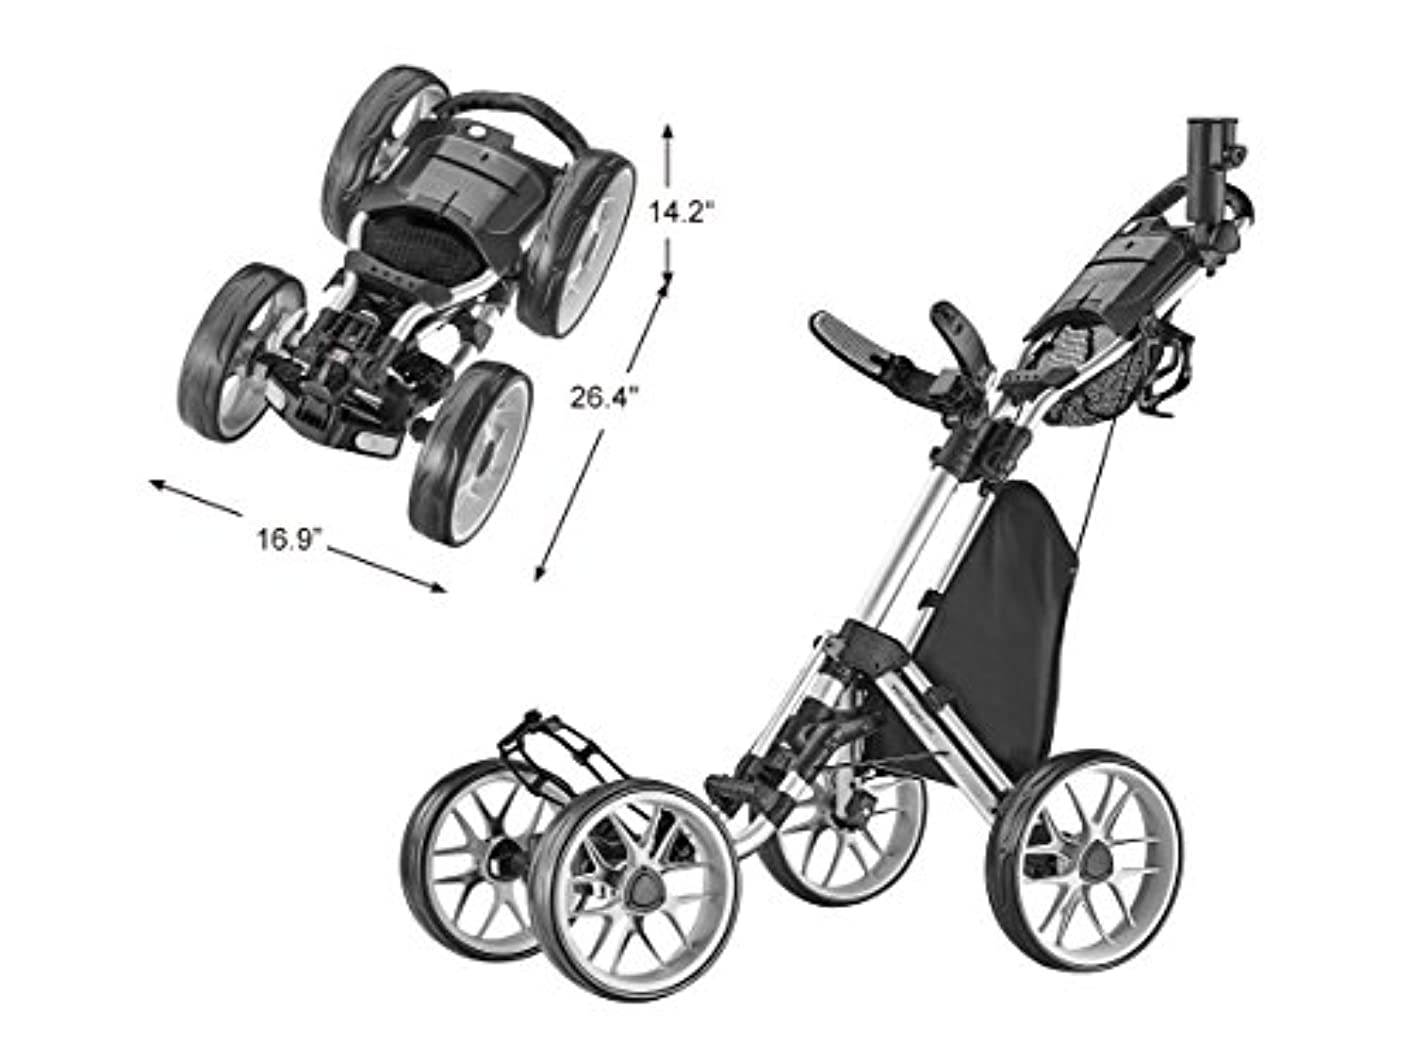 CaddyTek Caddycruiser One Version 8 - One-Click Folding 4 Wheel Golf Push Cart jkvhvmiq43424555